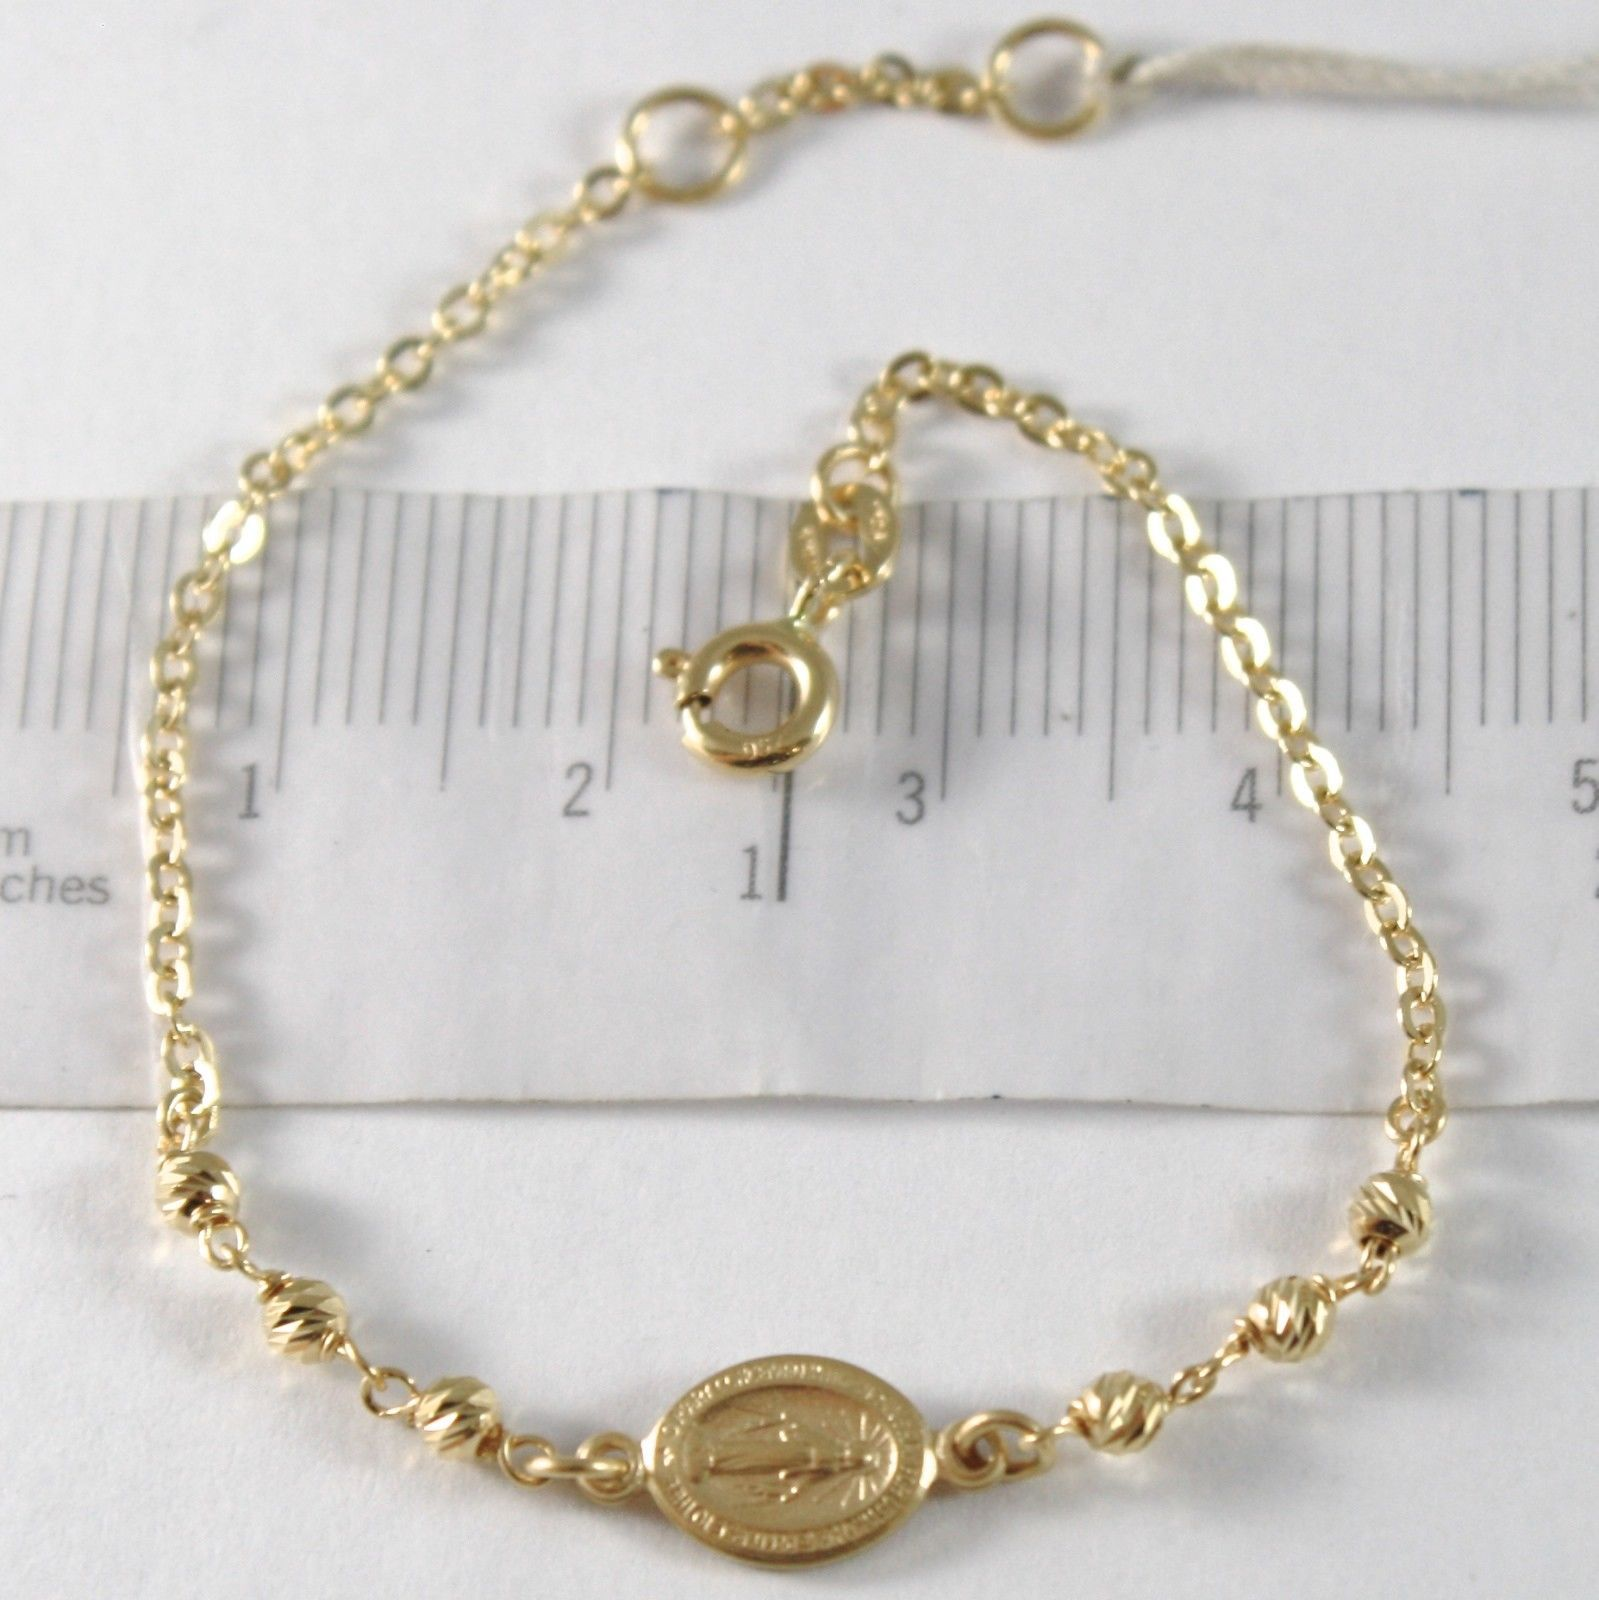 18K YELLOW GOLD BRACELET WITH MIRACULOUS MEDAL, BALLS, MADE IN ITALY, 5.9 INCHES